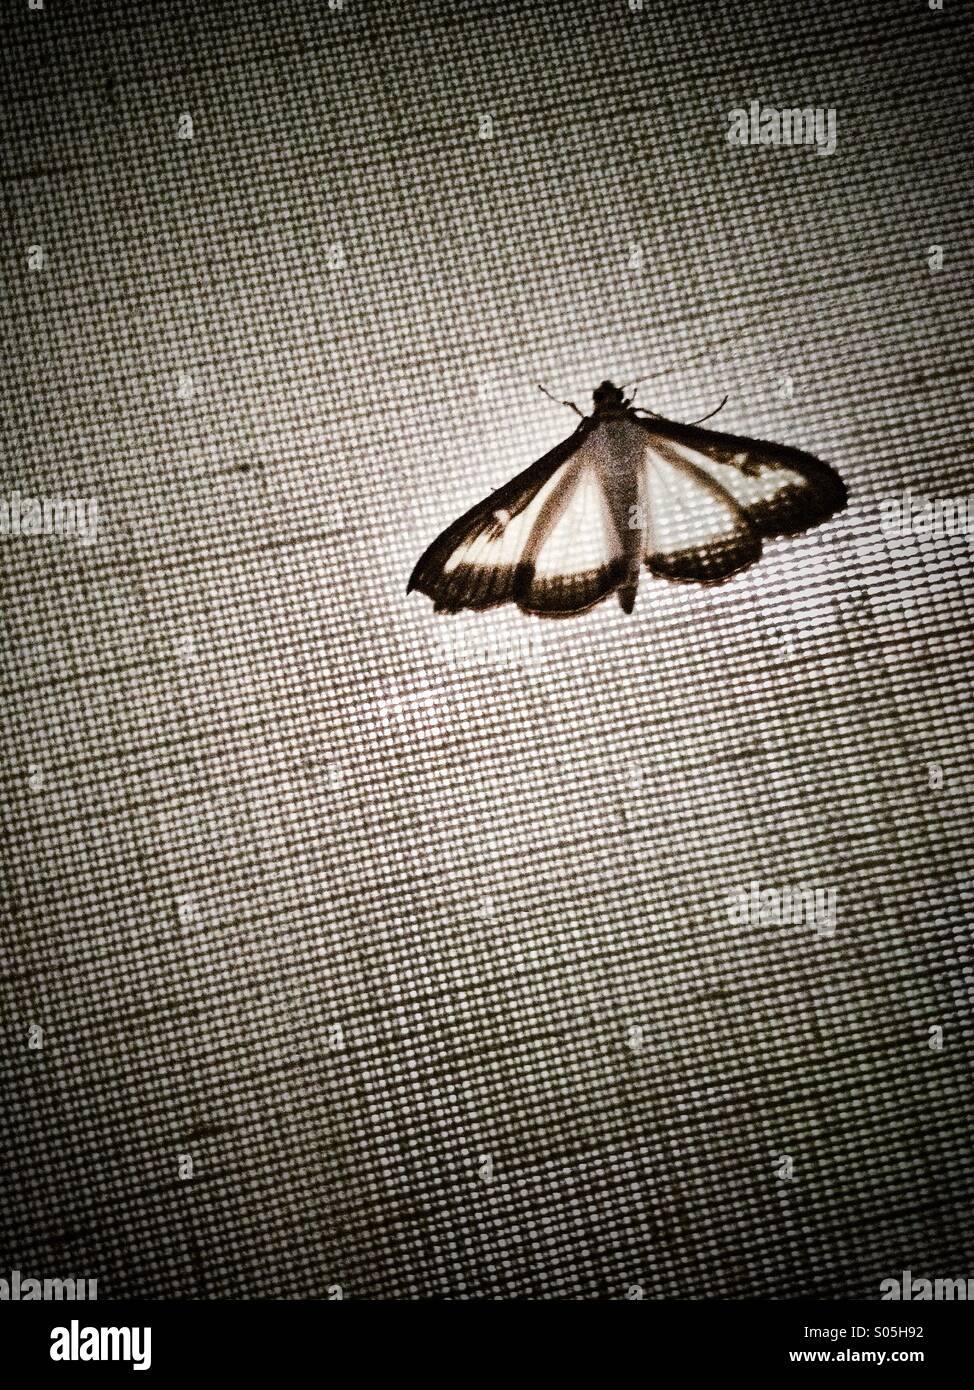 Butterfly on canvas - Stock Image